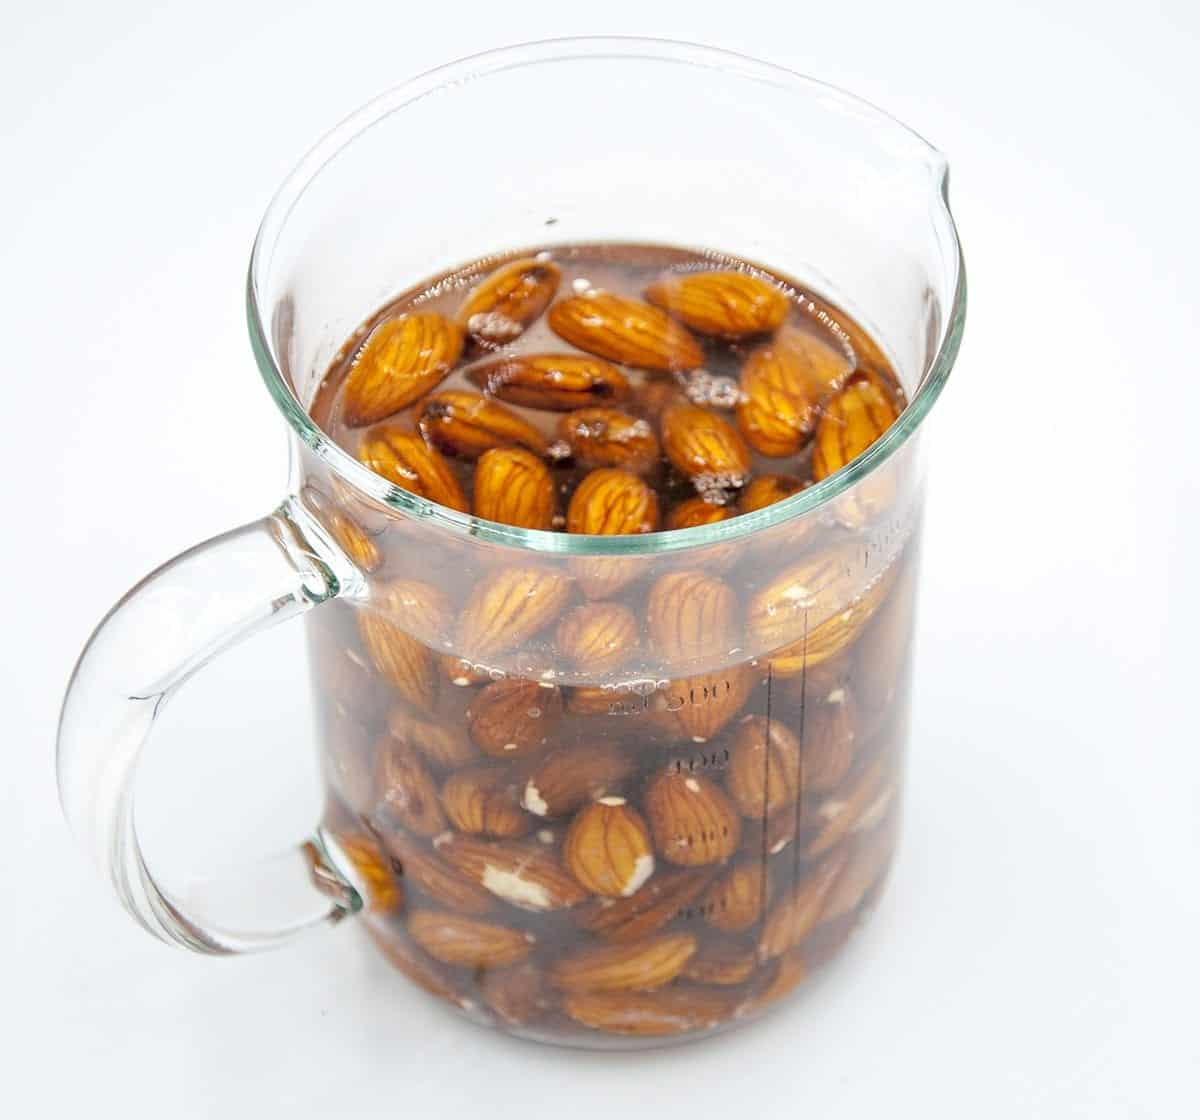 Ever wondered how to make your own almond milk? Believe me, it's easier than milking a cow! Diary free goodness in your own kitchen. And the kids can help too! | theyumyumclub.com